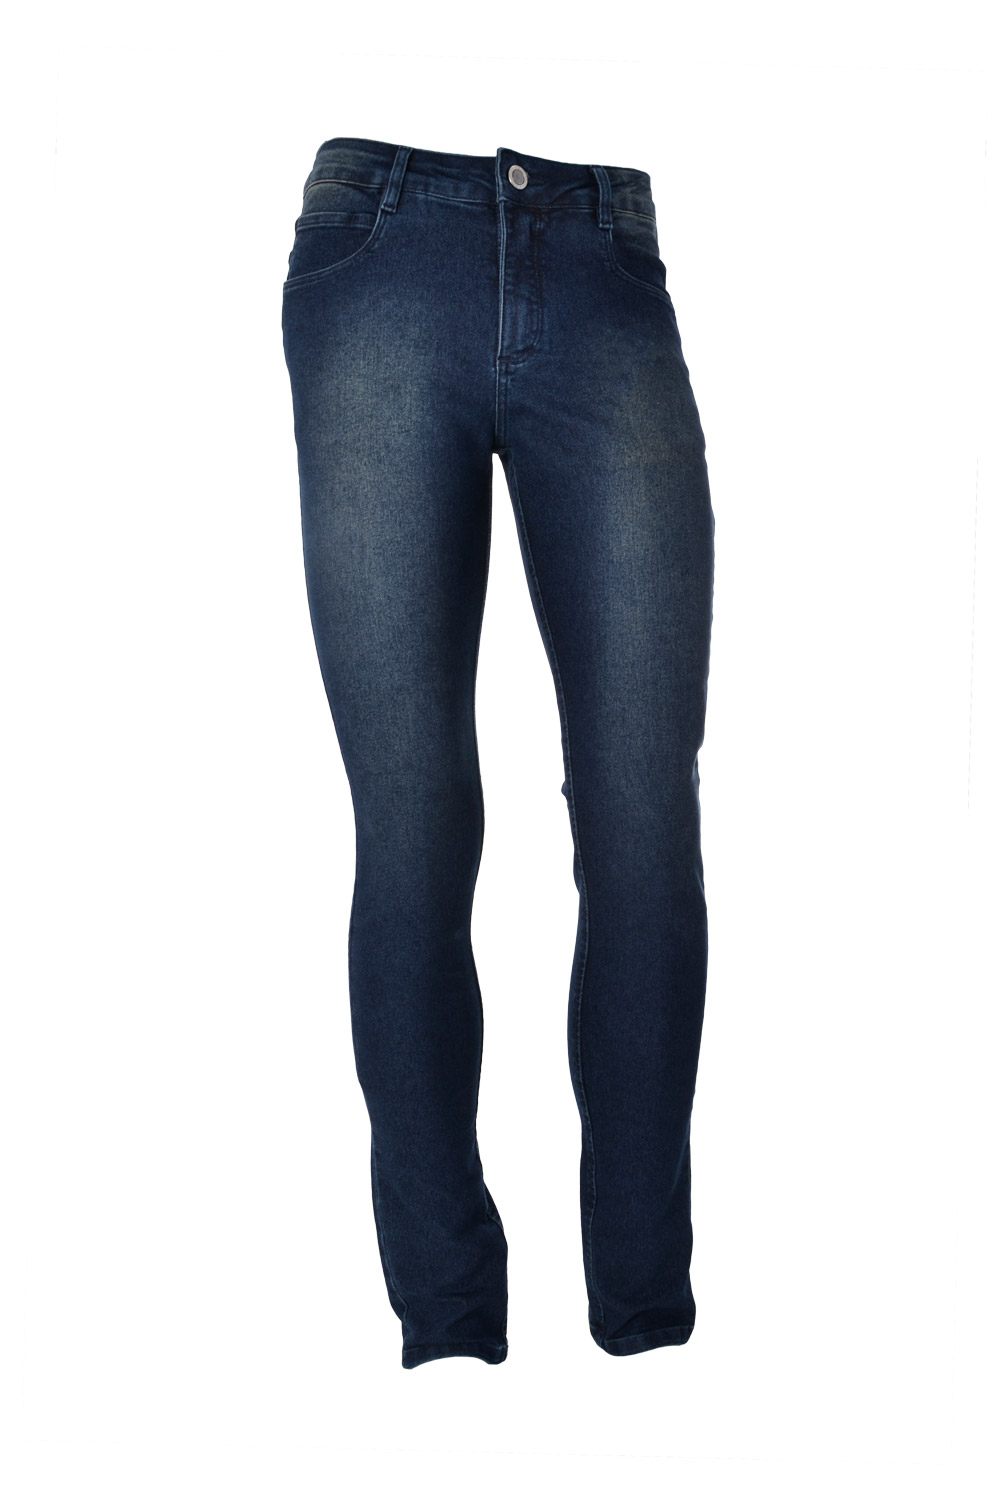 CALÇA JEANS BLUES POLIALGODAO & ELASTANO STRETCH STONED USED